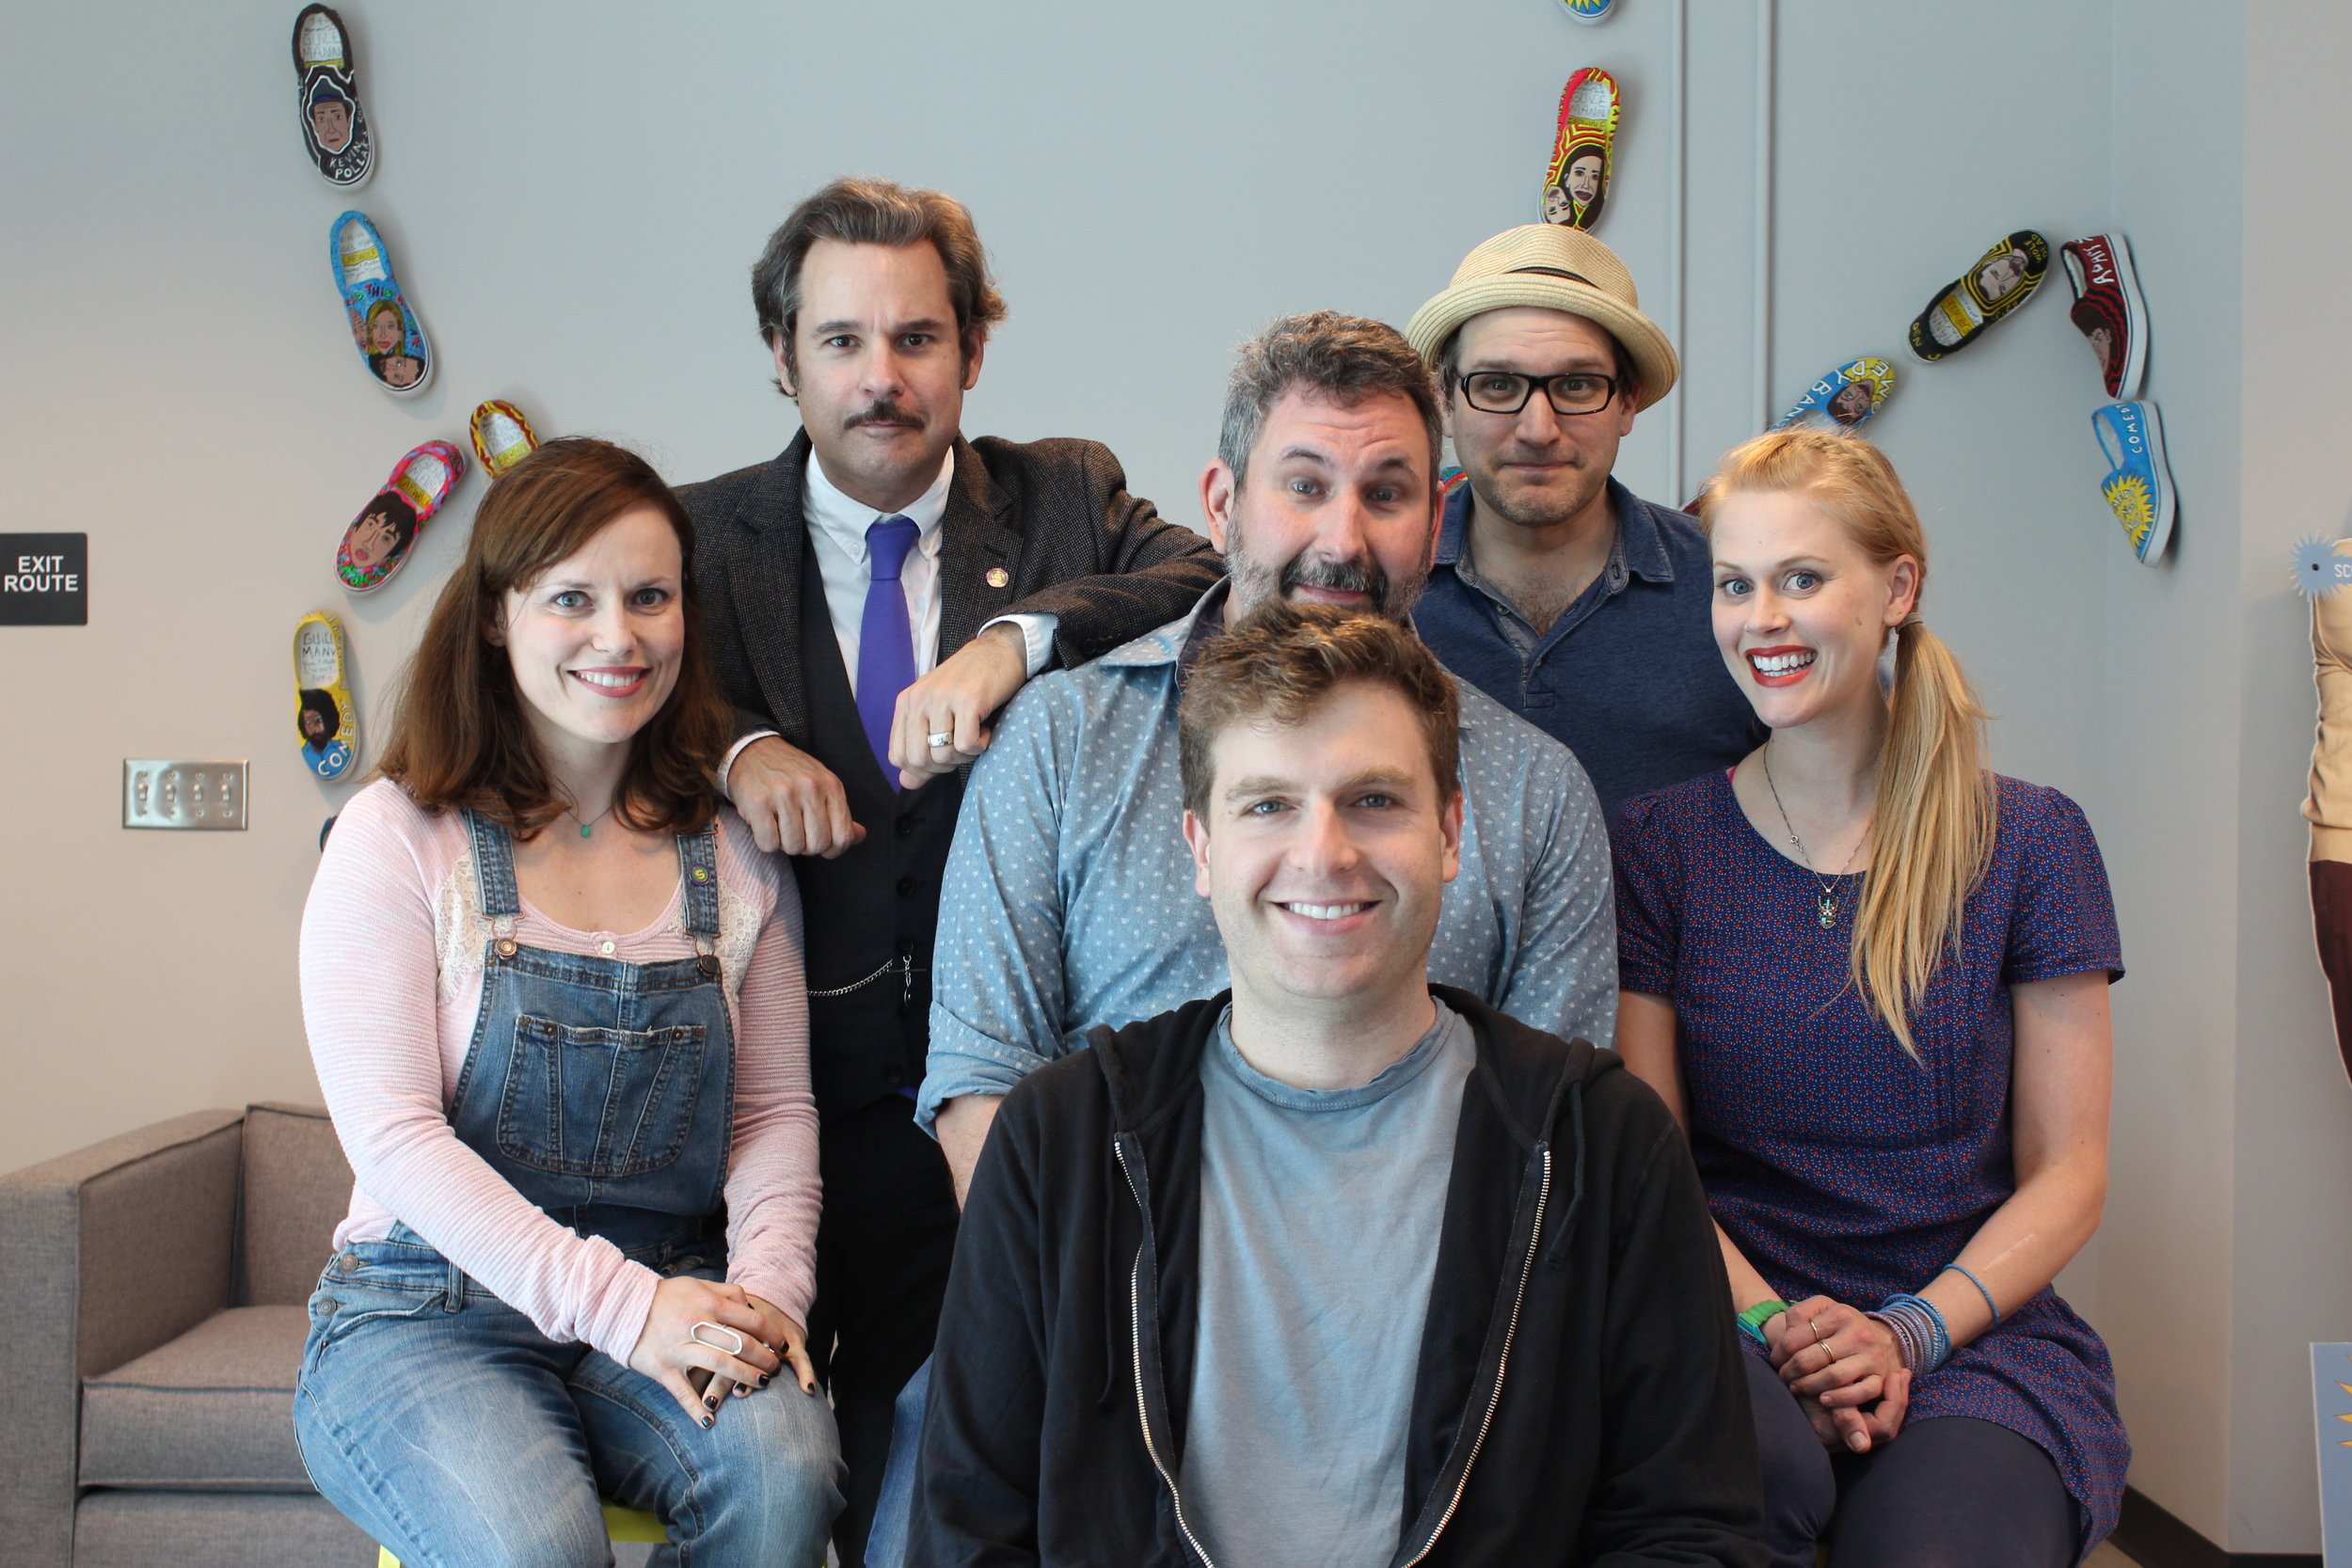 "Spontaneanation with Paul F. Tompkins#47 Pediatrician's Office(February 15th, 2016) - Paul F. Tompkins welcomes everyone who took the time to stream, download, or overhear SPONTANEANATION! This week, Paul's special guest is Midroll CEO and The Wolf Den host Adam Sachs! They chat about baseball, how much brain space is needed to know three languages, and ""the rules of the road"" in India. Paul is then joined by Carla Cackowski, Craig Cackowski, and Little Janet Varney to improvise a story set in a Pediatrician's Office. And as always, Eban (only the best) Schletter scores it all on piano!"